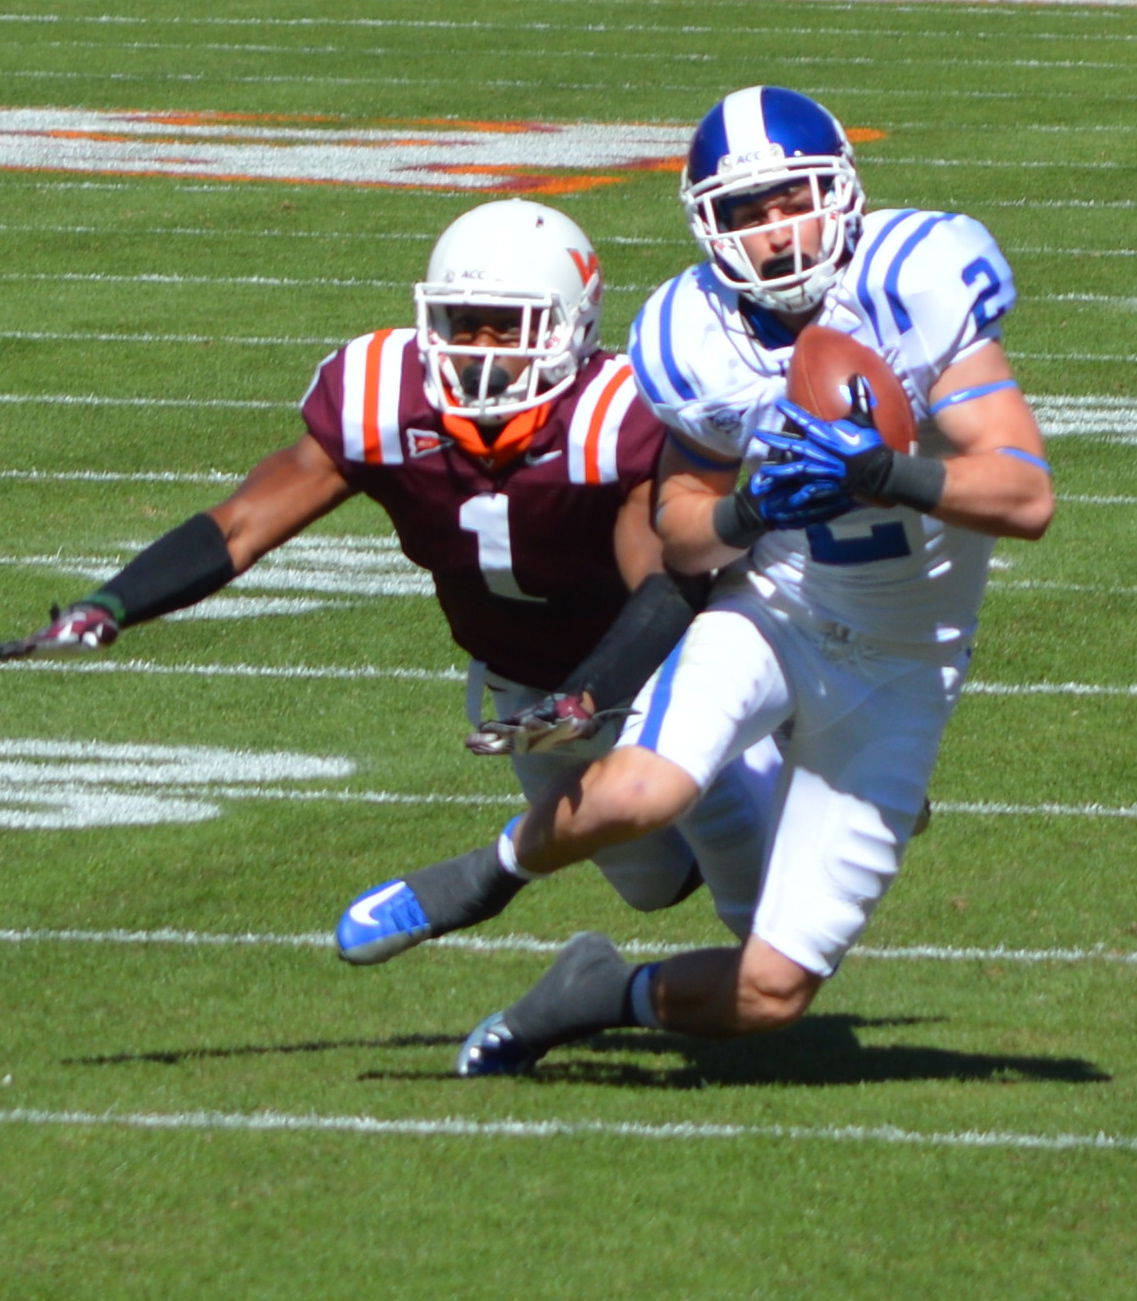 Senior WR Conner Vernon will look to get his first win against rival UNC on Saturday - BDN Photo